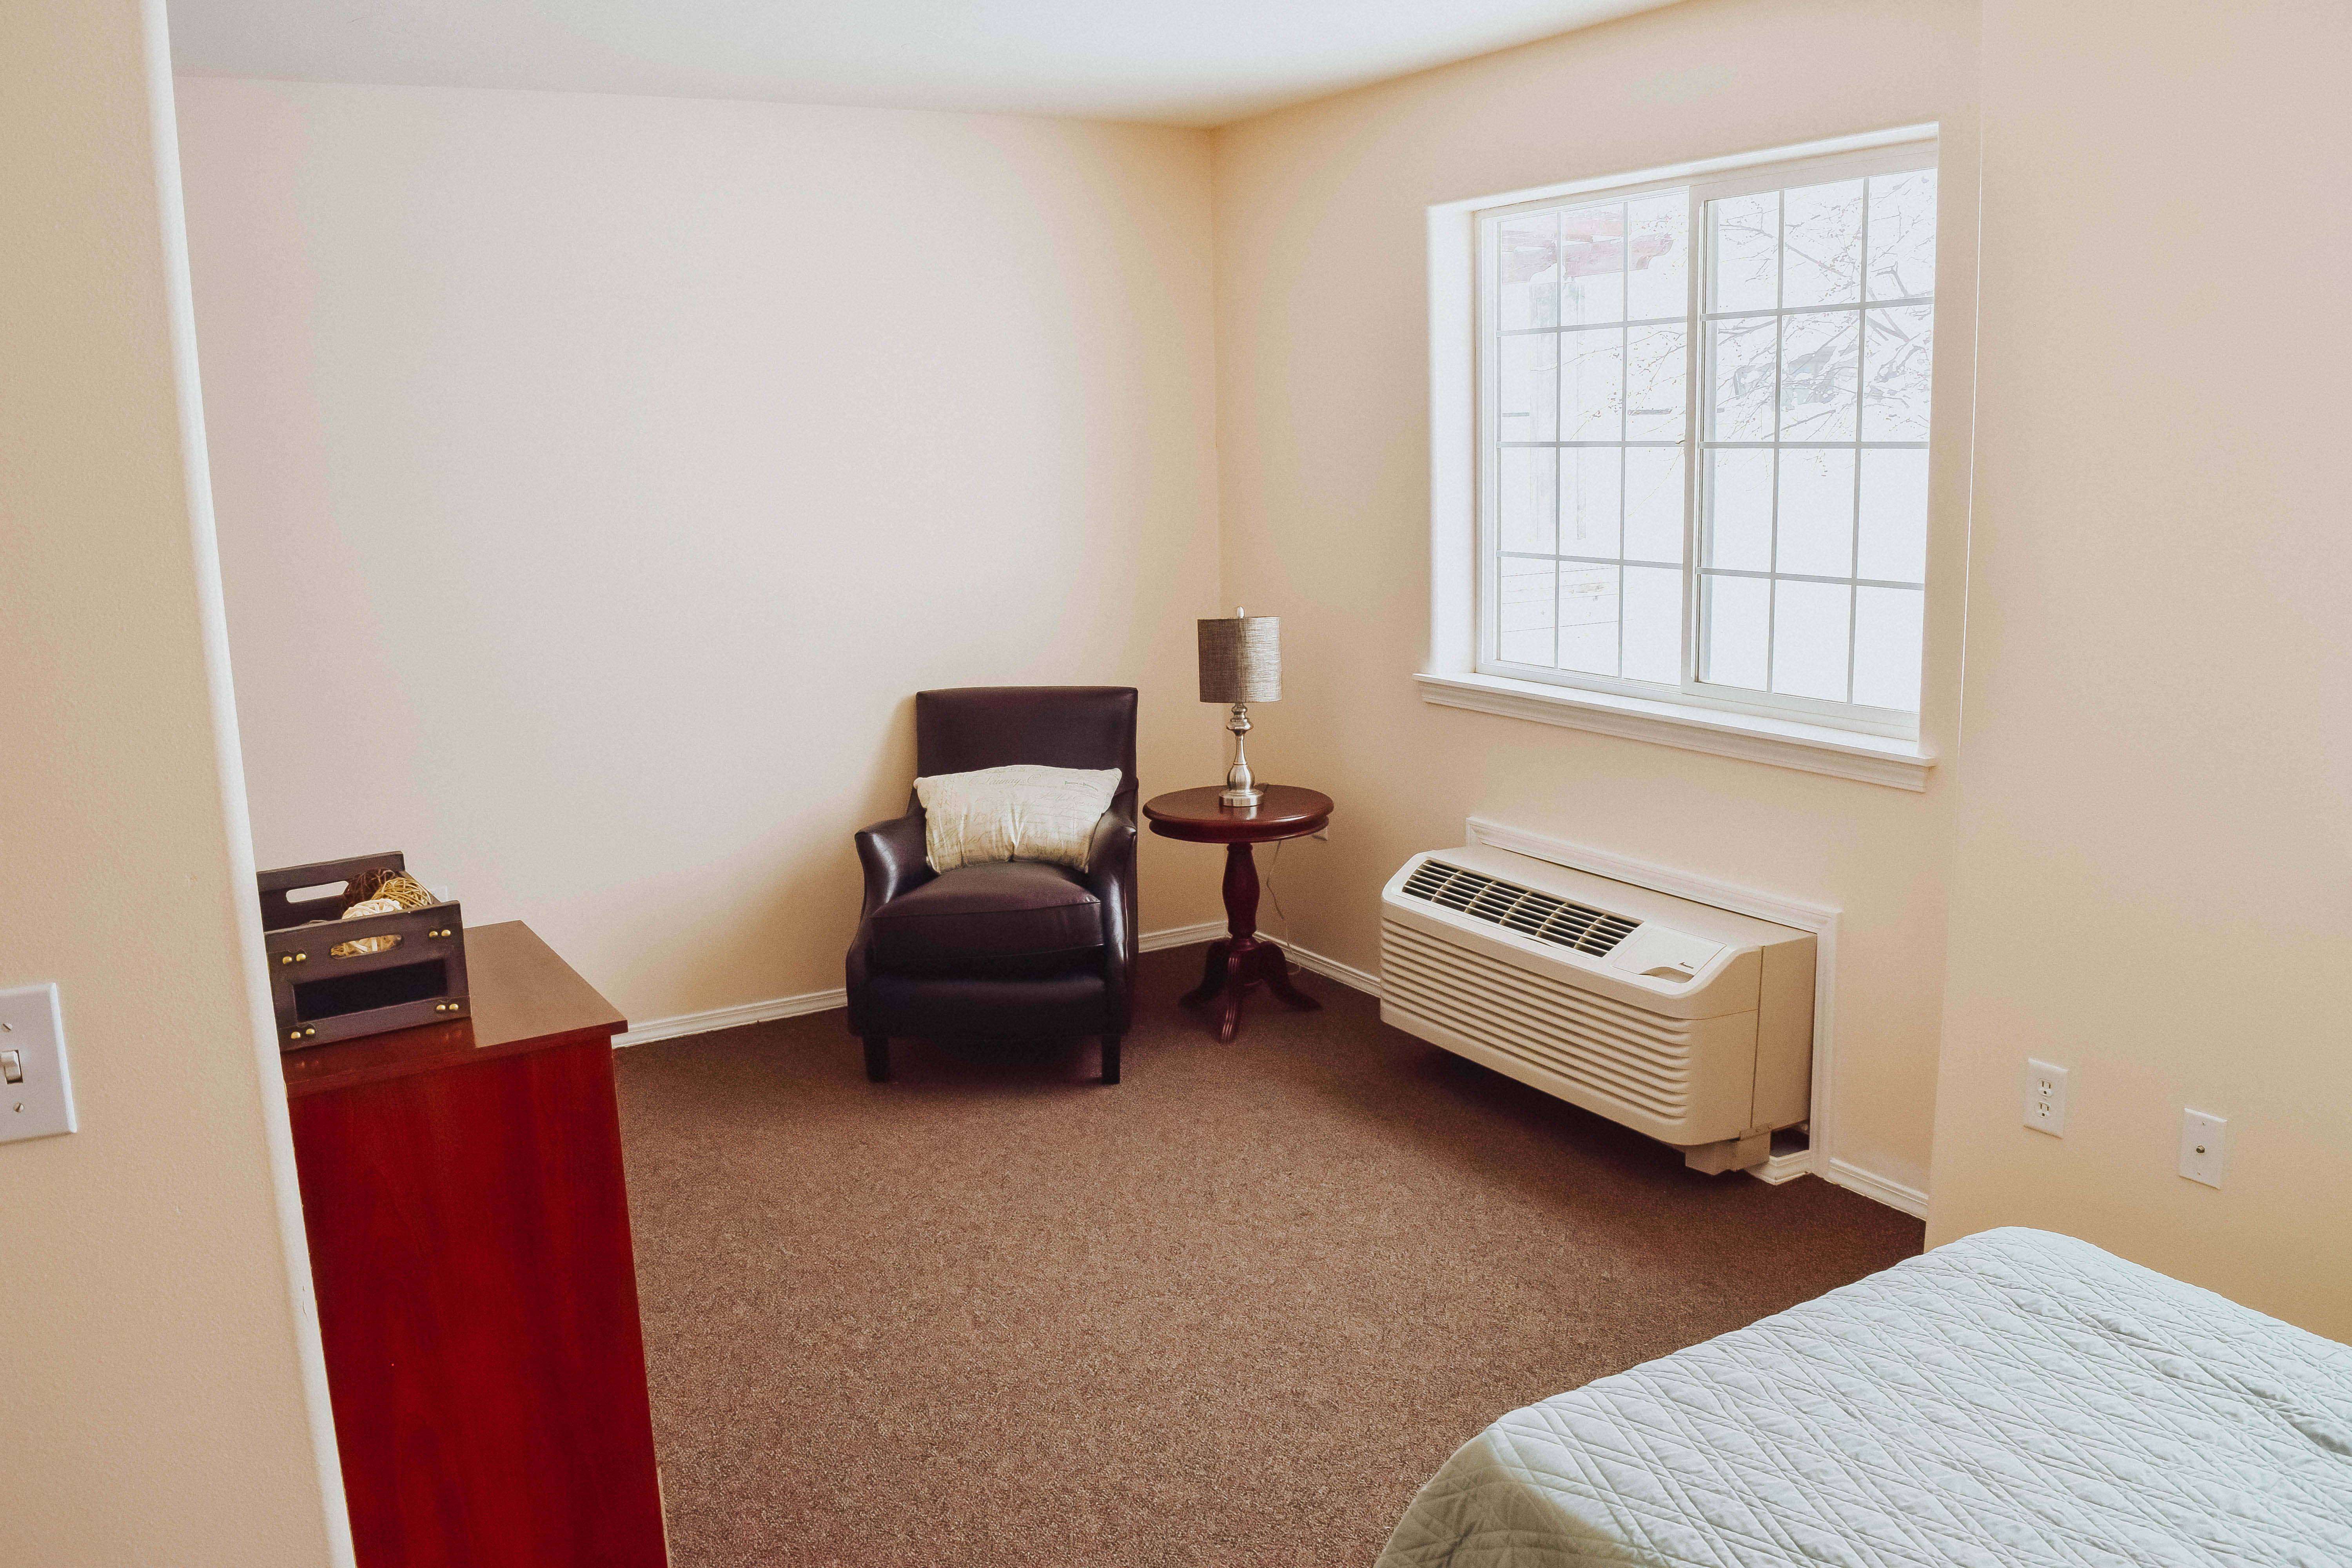 Tambree Meadows Assisted Living Bedroom 2